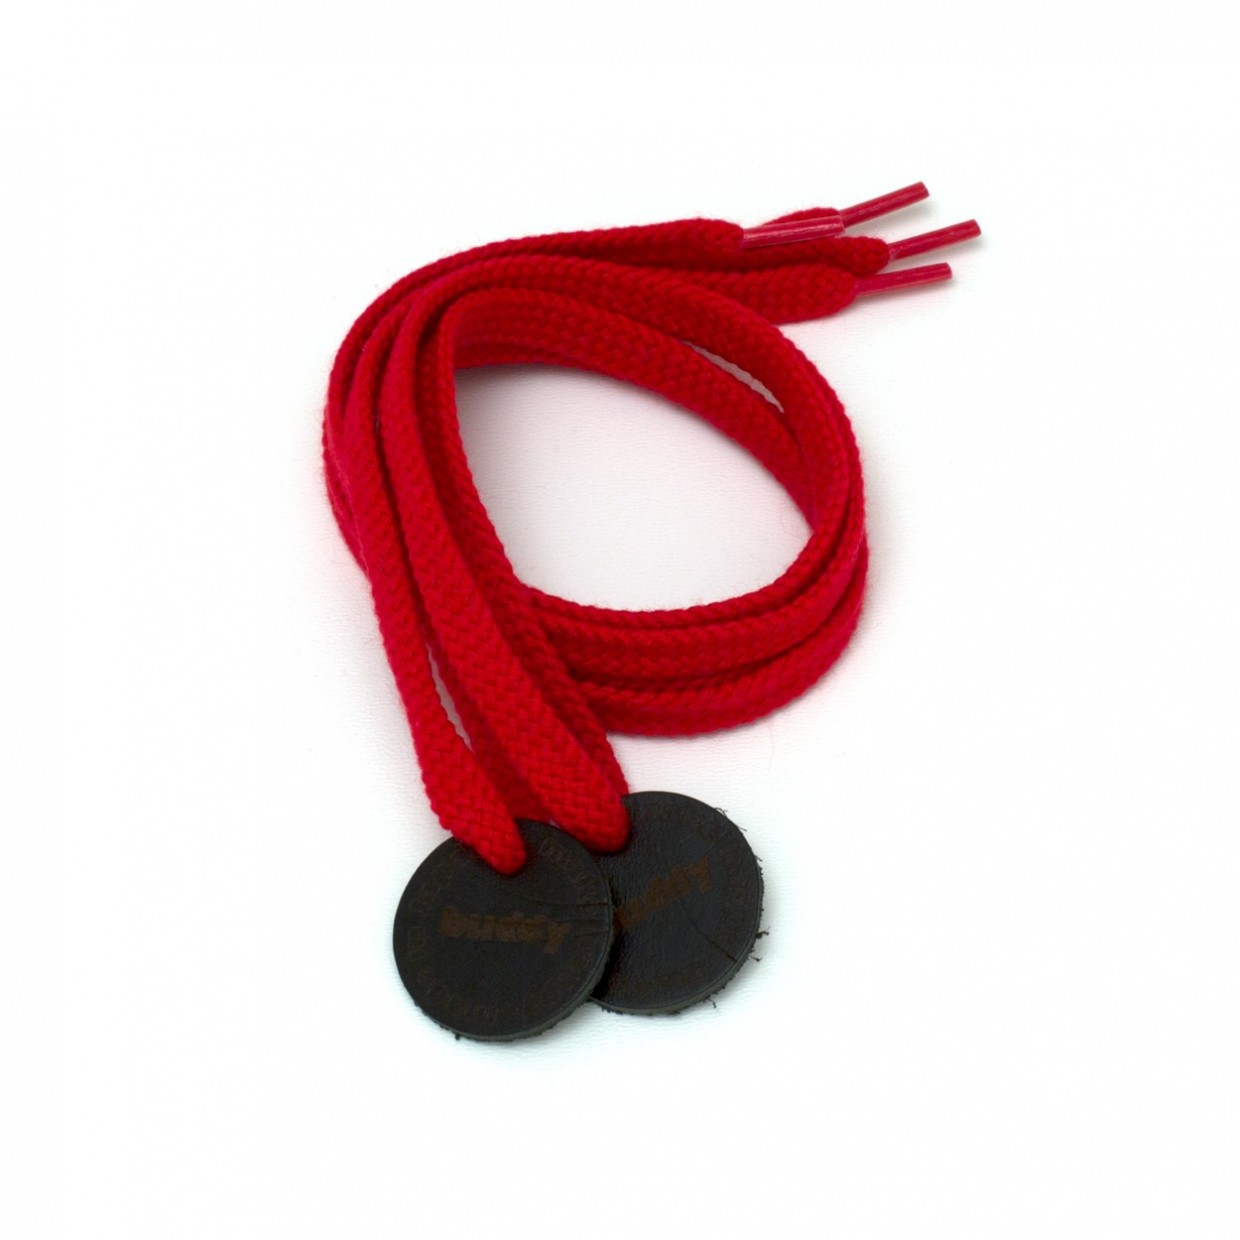 Shoelaces Red with Leather patch 78 cm : 31 ""